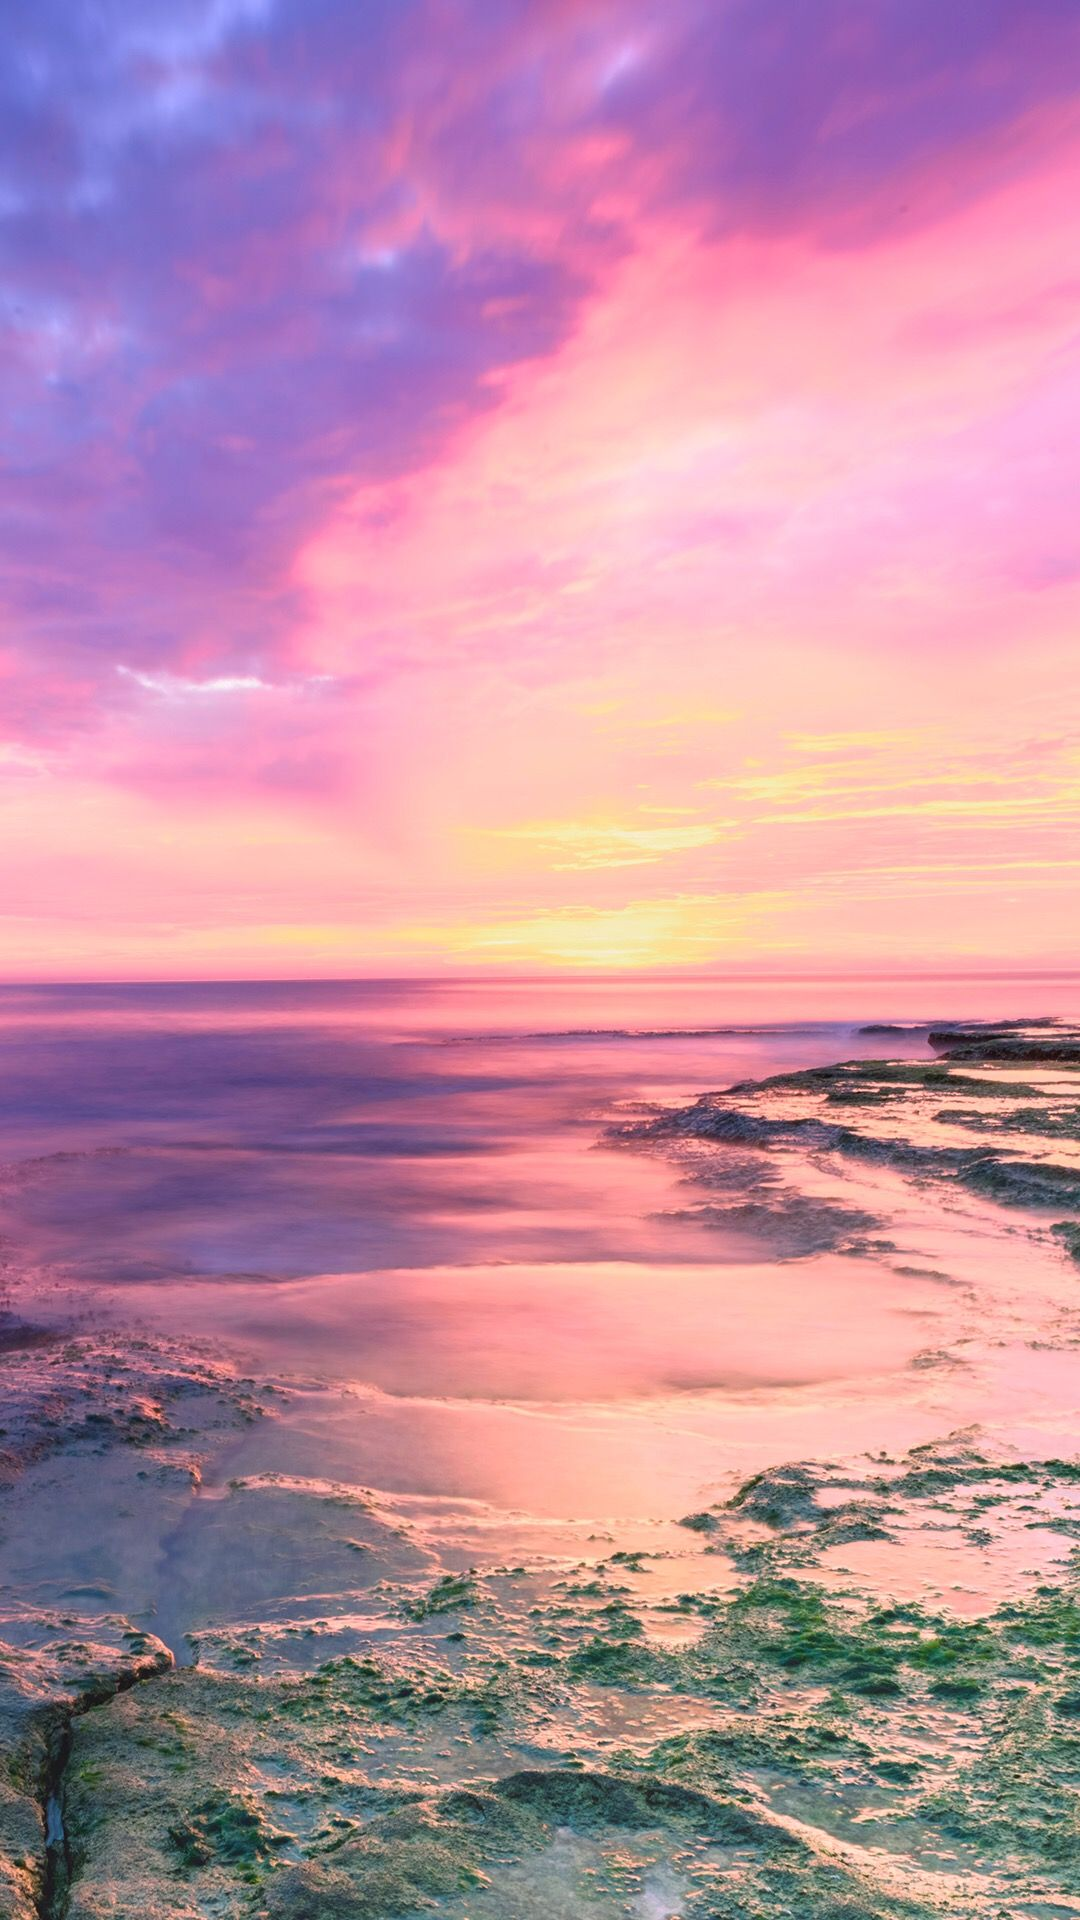 Pink Beach Cute Photos Iphone Wallpaper